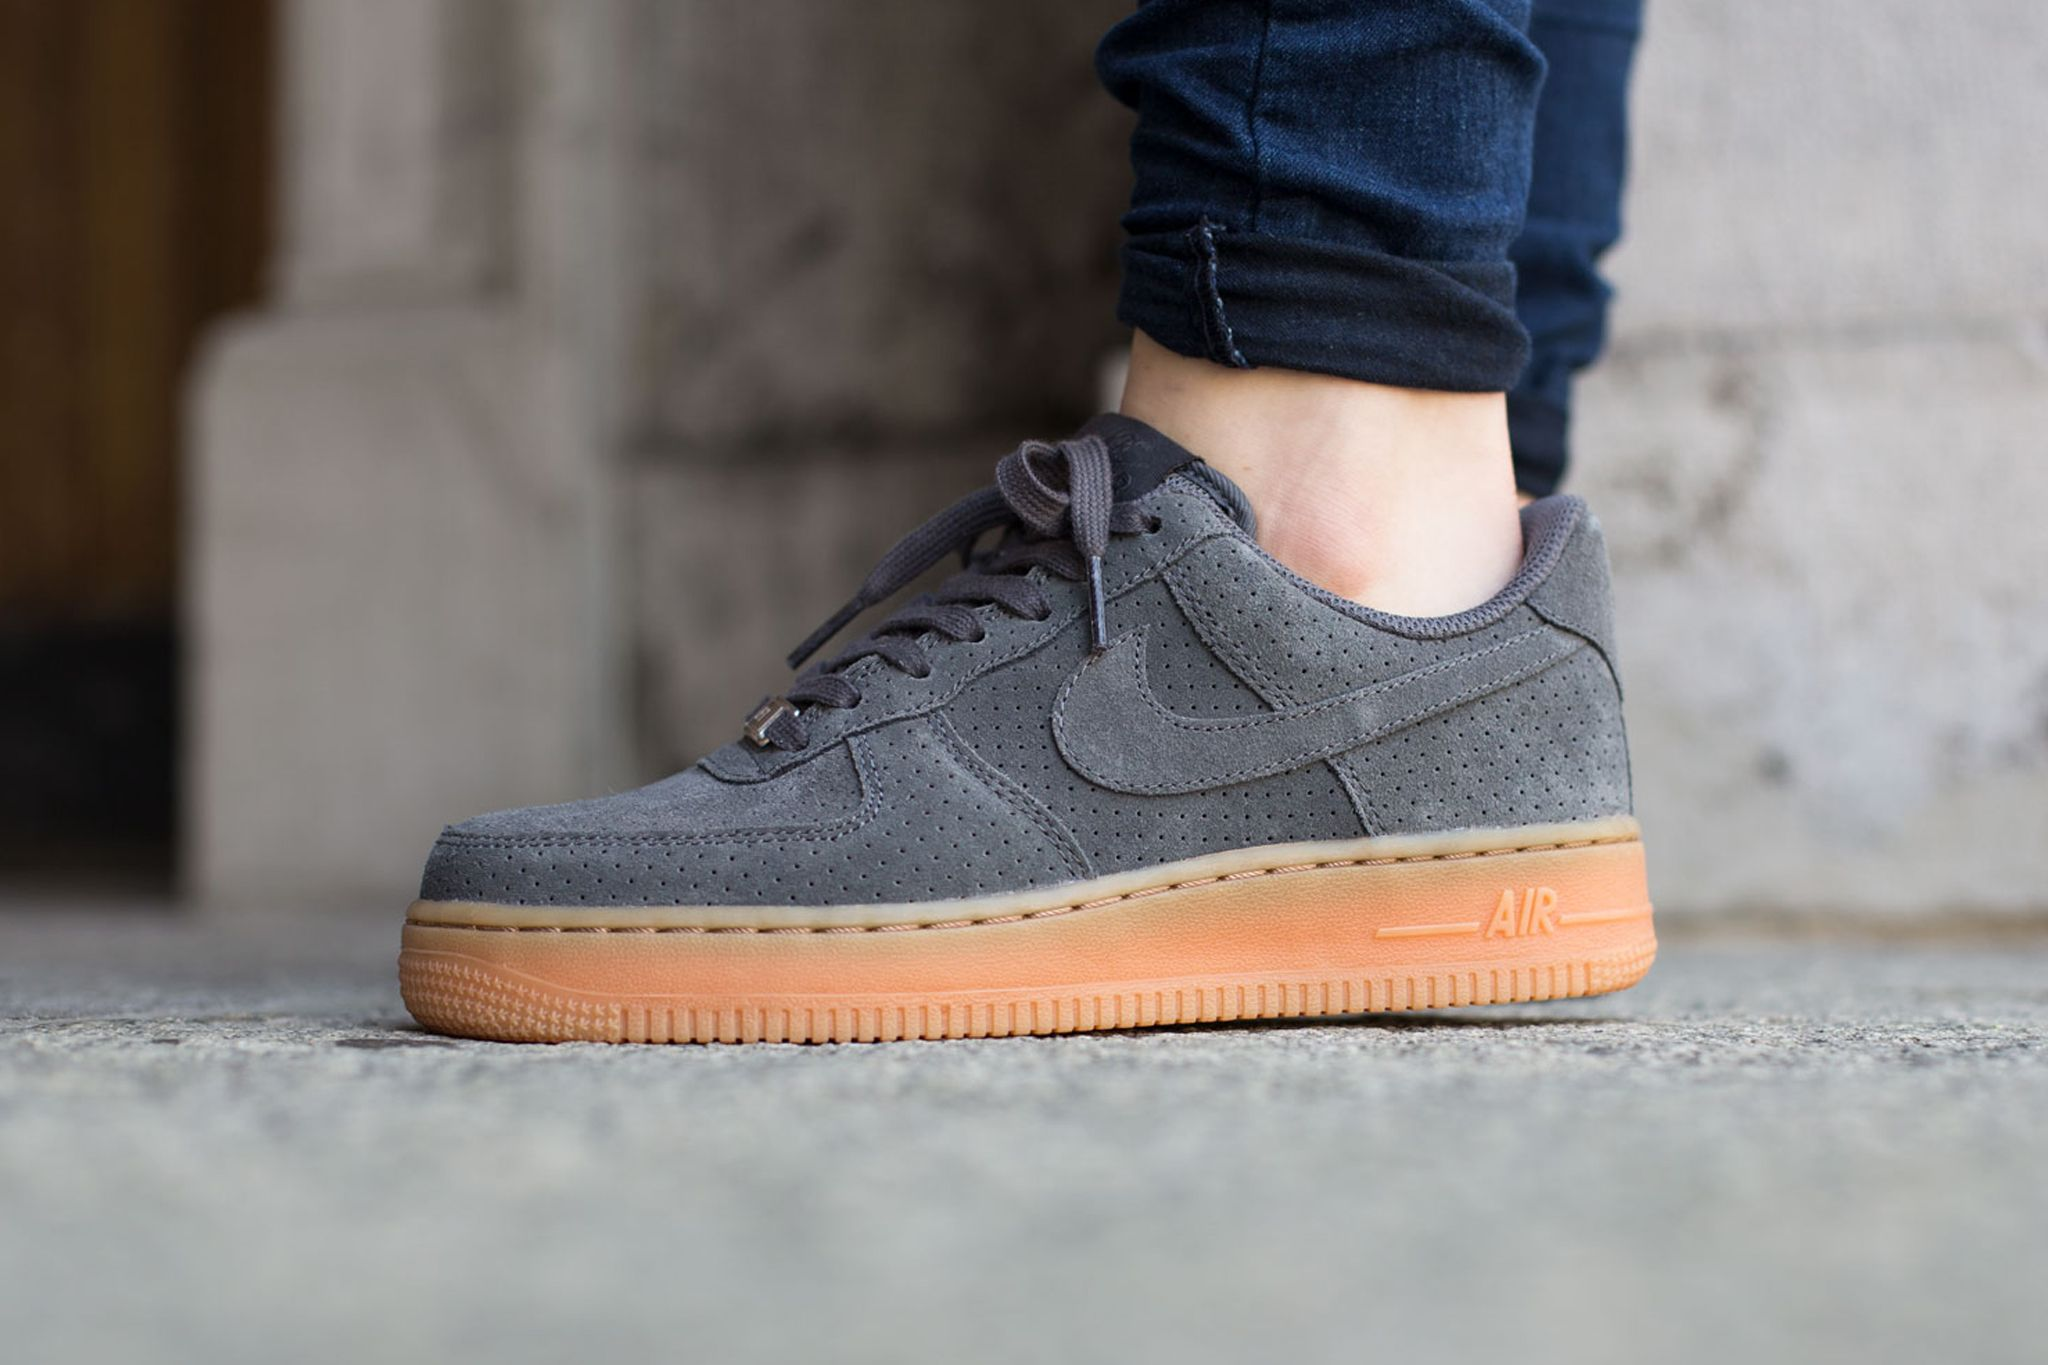 Nike Wmns Air Force 1 07 Suede | Sneakers in 2019 | Schuhe